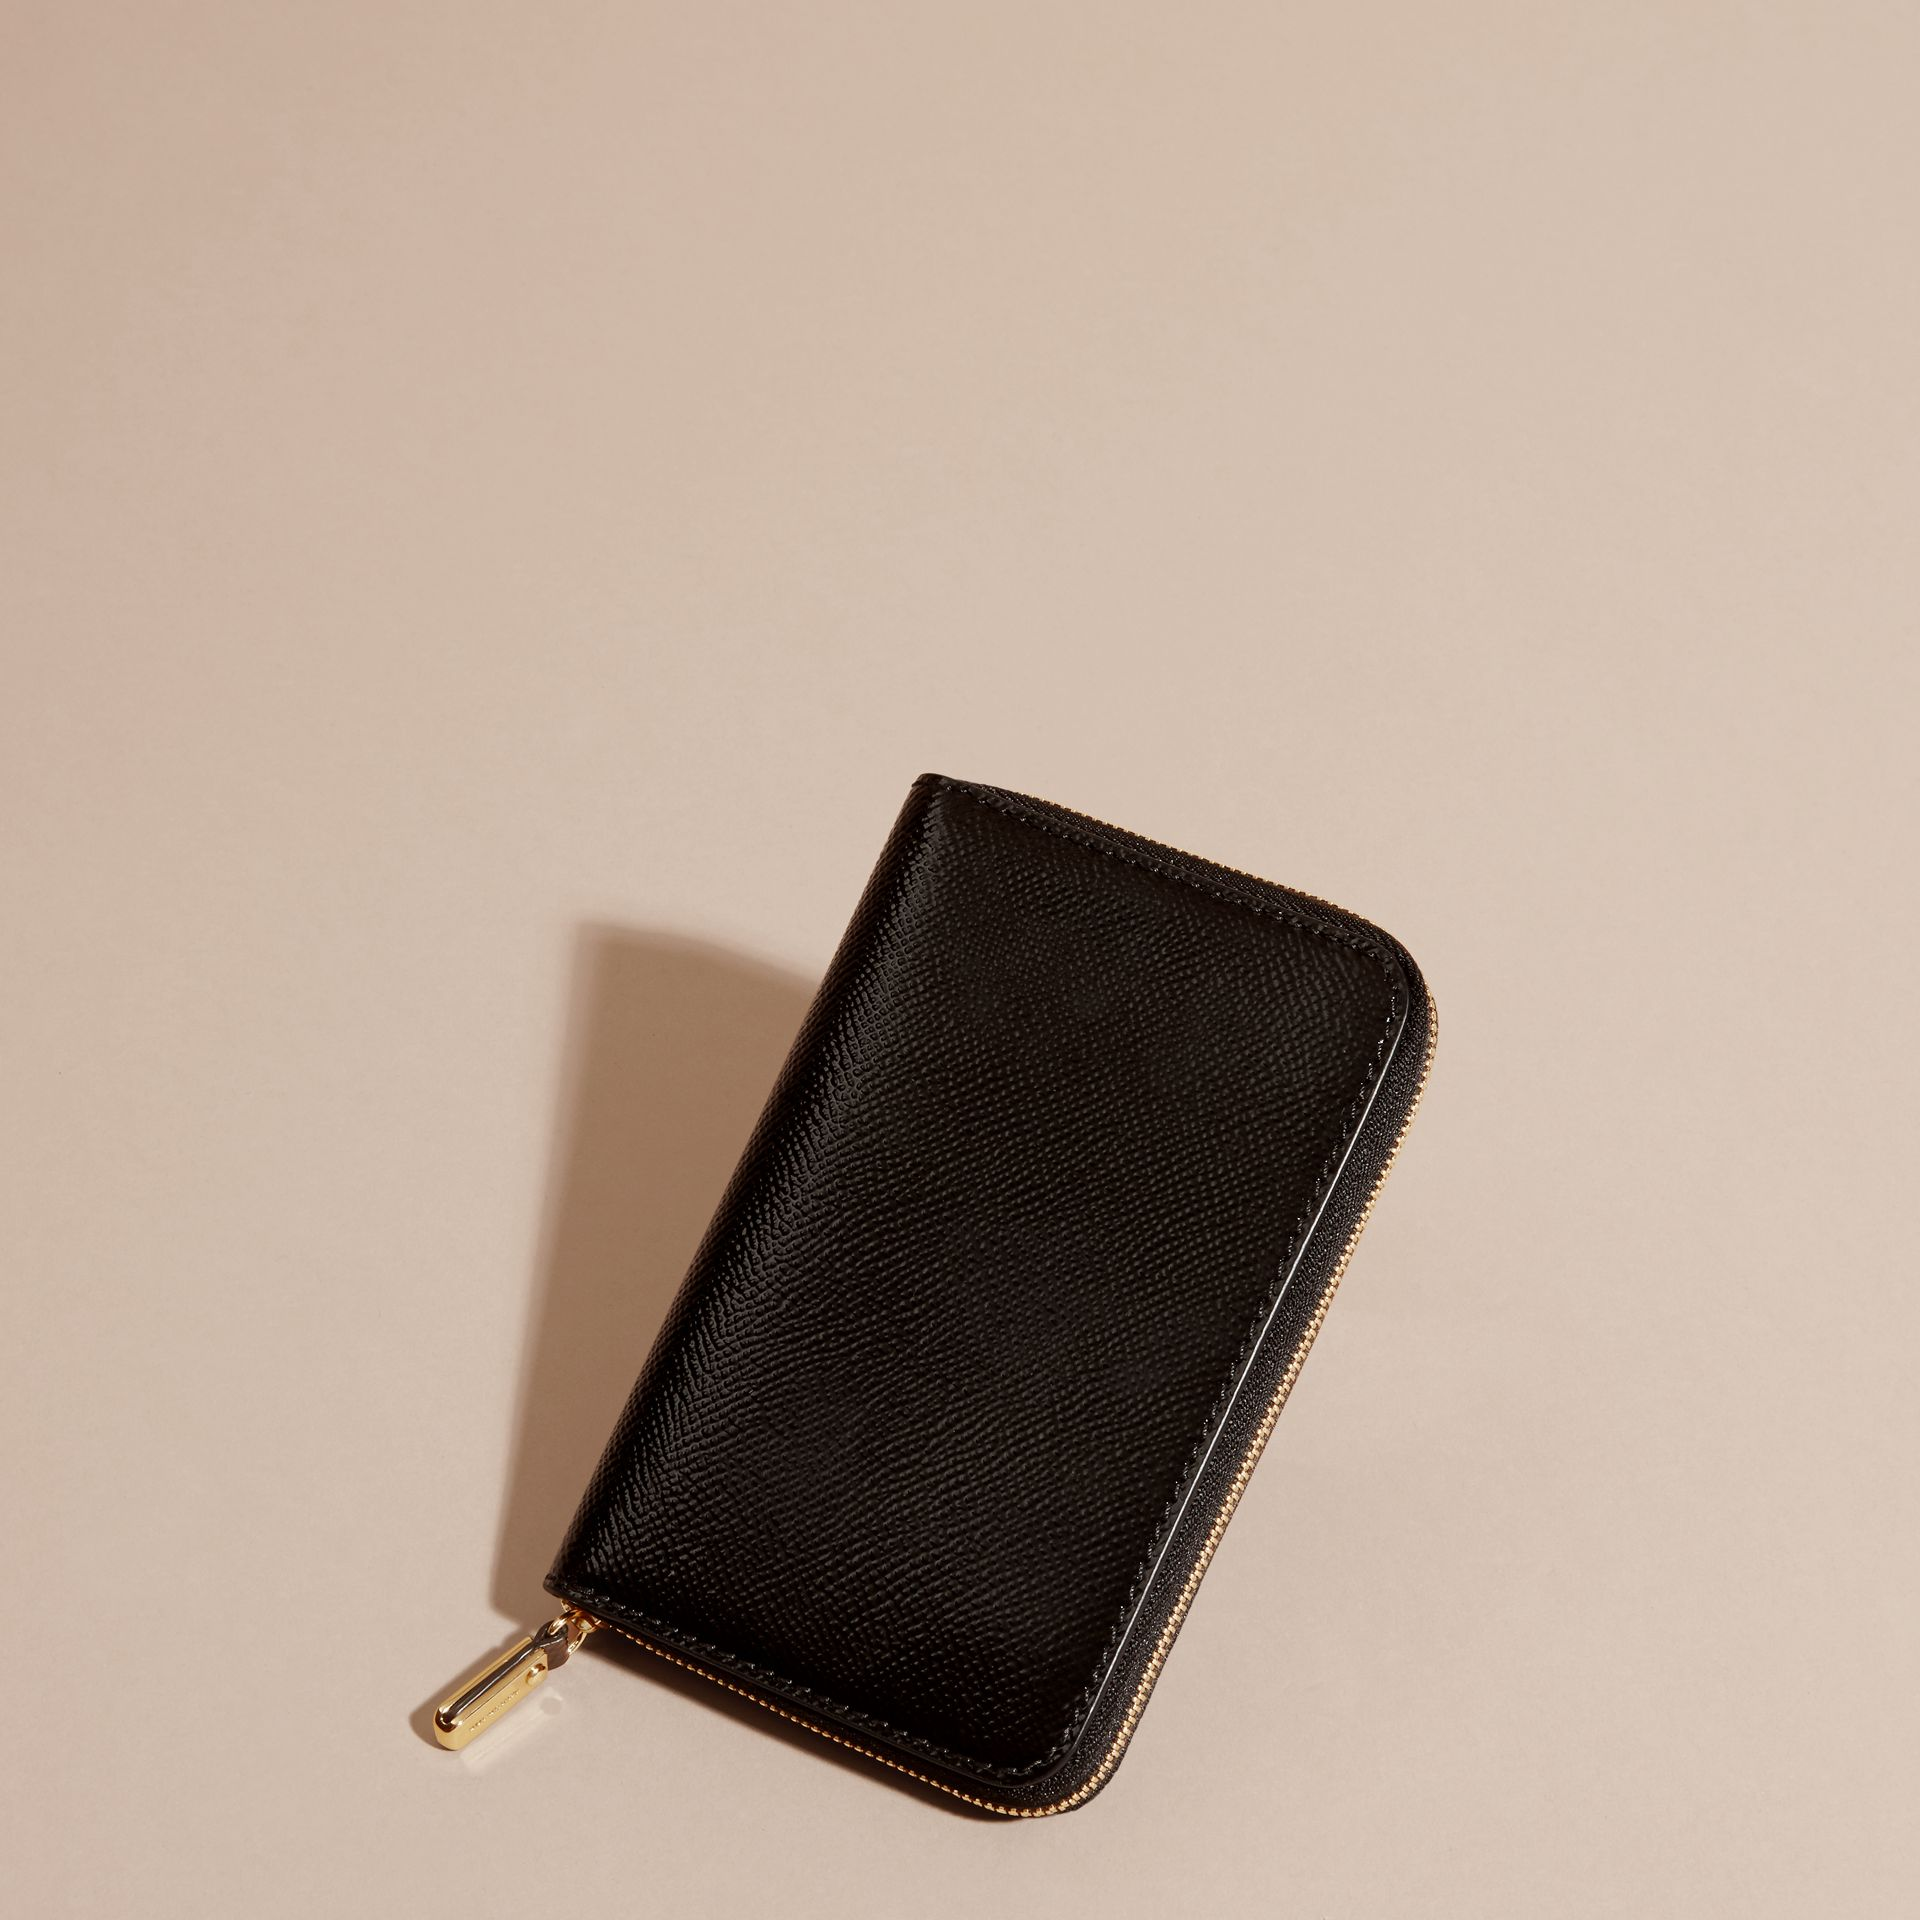 Black Patent London Leather Ziparound Wallet Black - gallery image 4